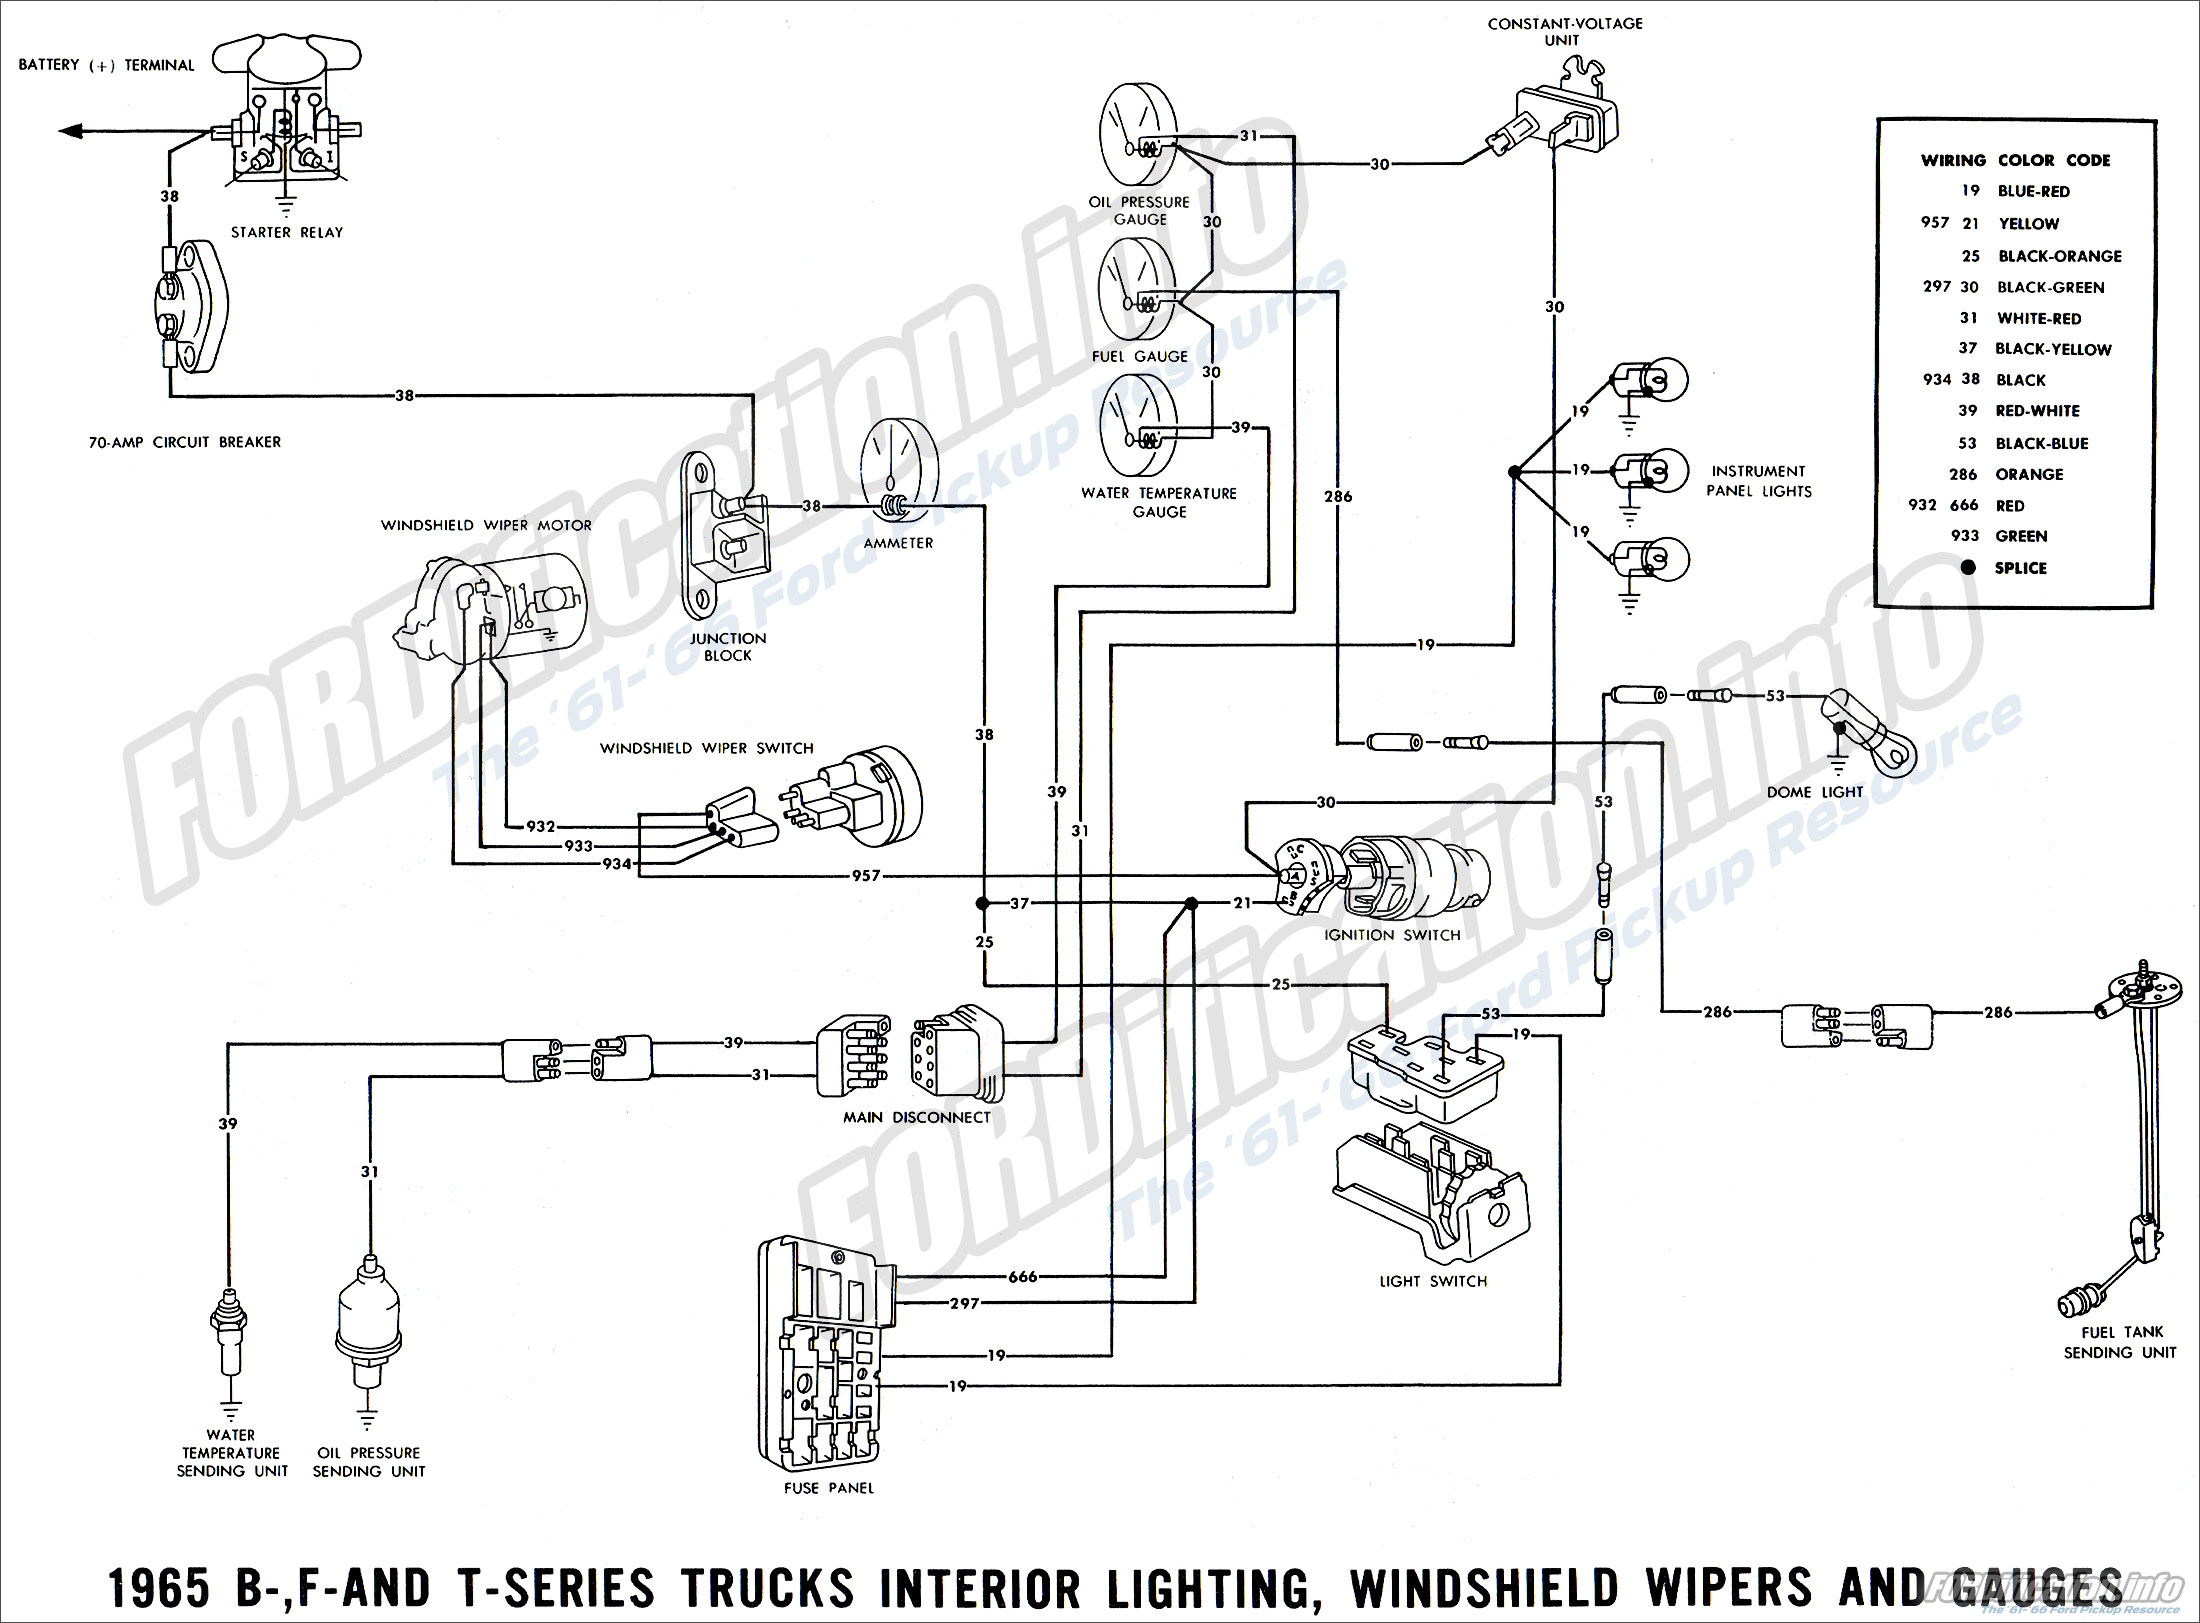 Basic Truck Wiring Diagram 1965 Ford Diagrams The 61 66 B F And T Series Interior Lighting Windshield Wiper Gauges